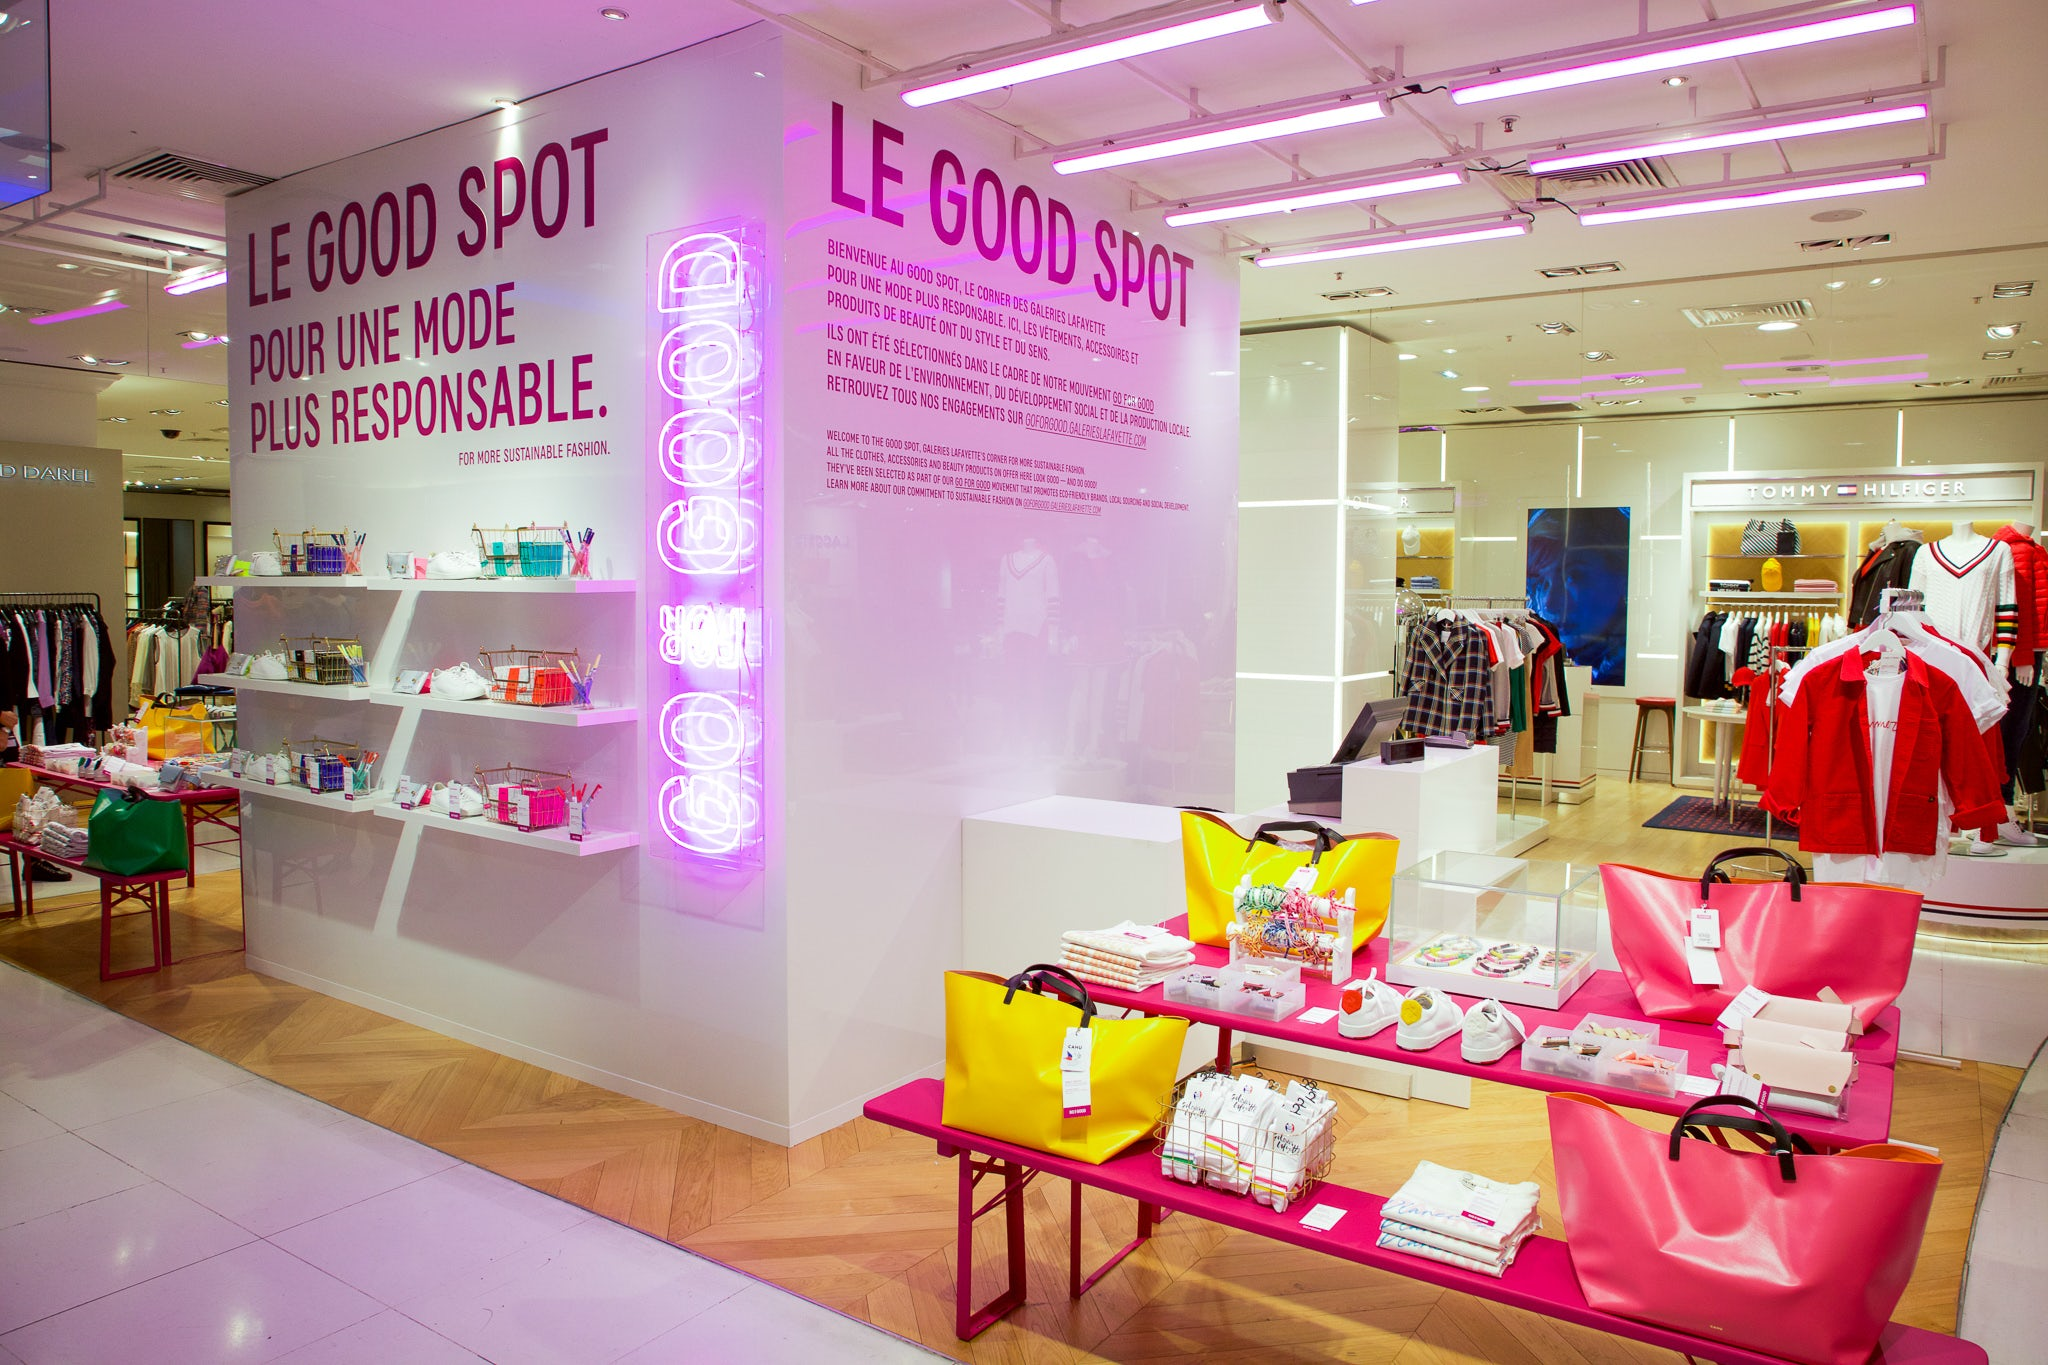 Galeries Lafayette's showcase of sustainable products in its Boulevard Haussman store in Paris | Source: Courtesy